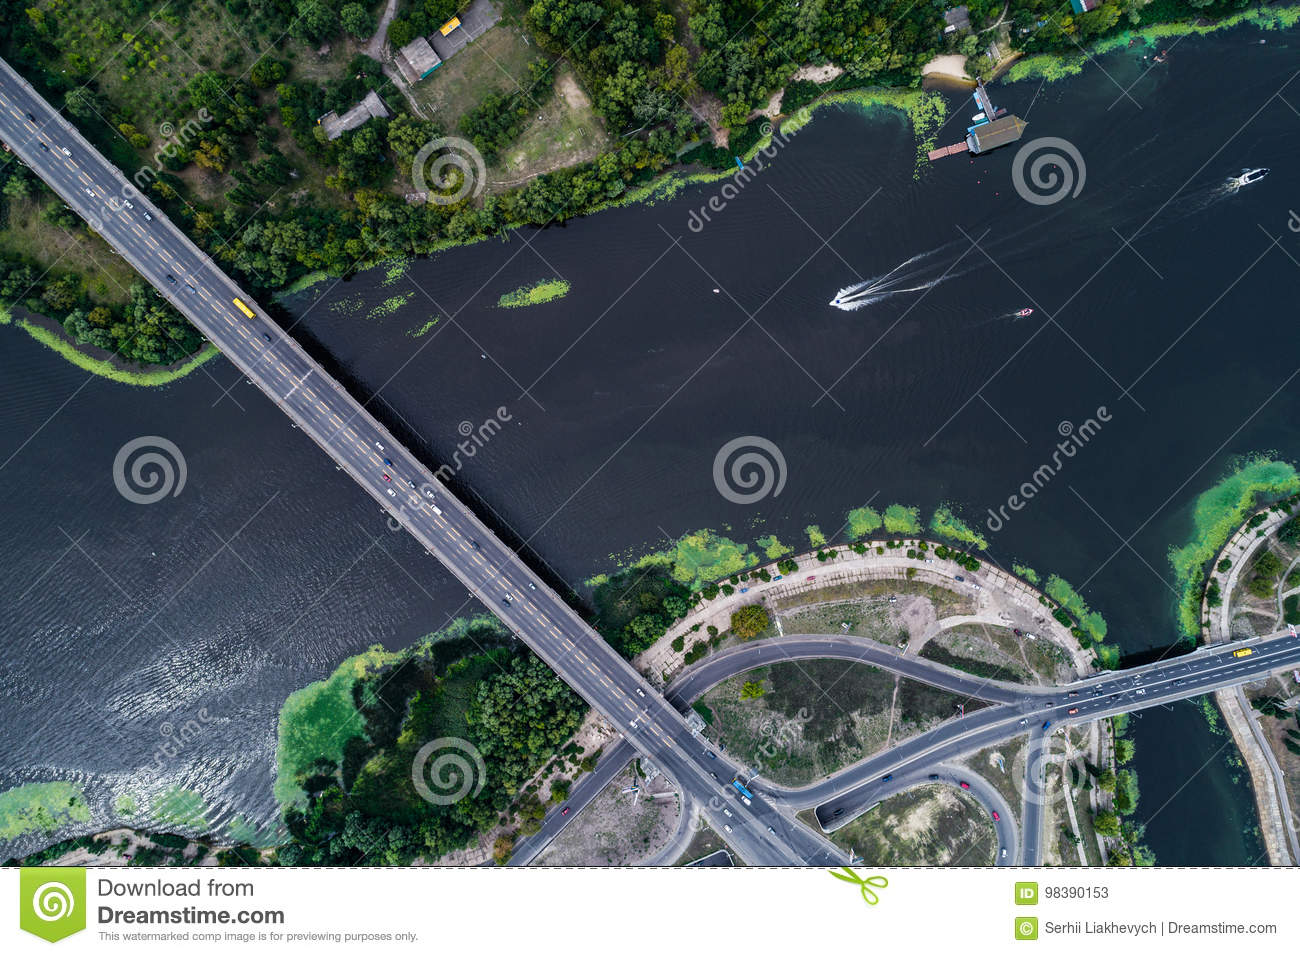 Aerial view of the bridge and the road over the Dnepr River over a green island in the middle of the river